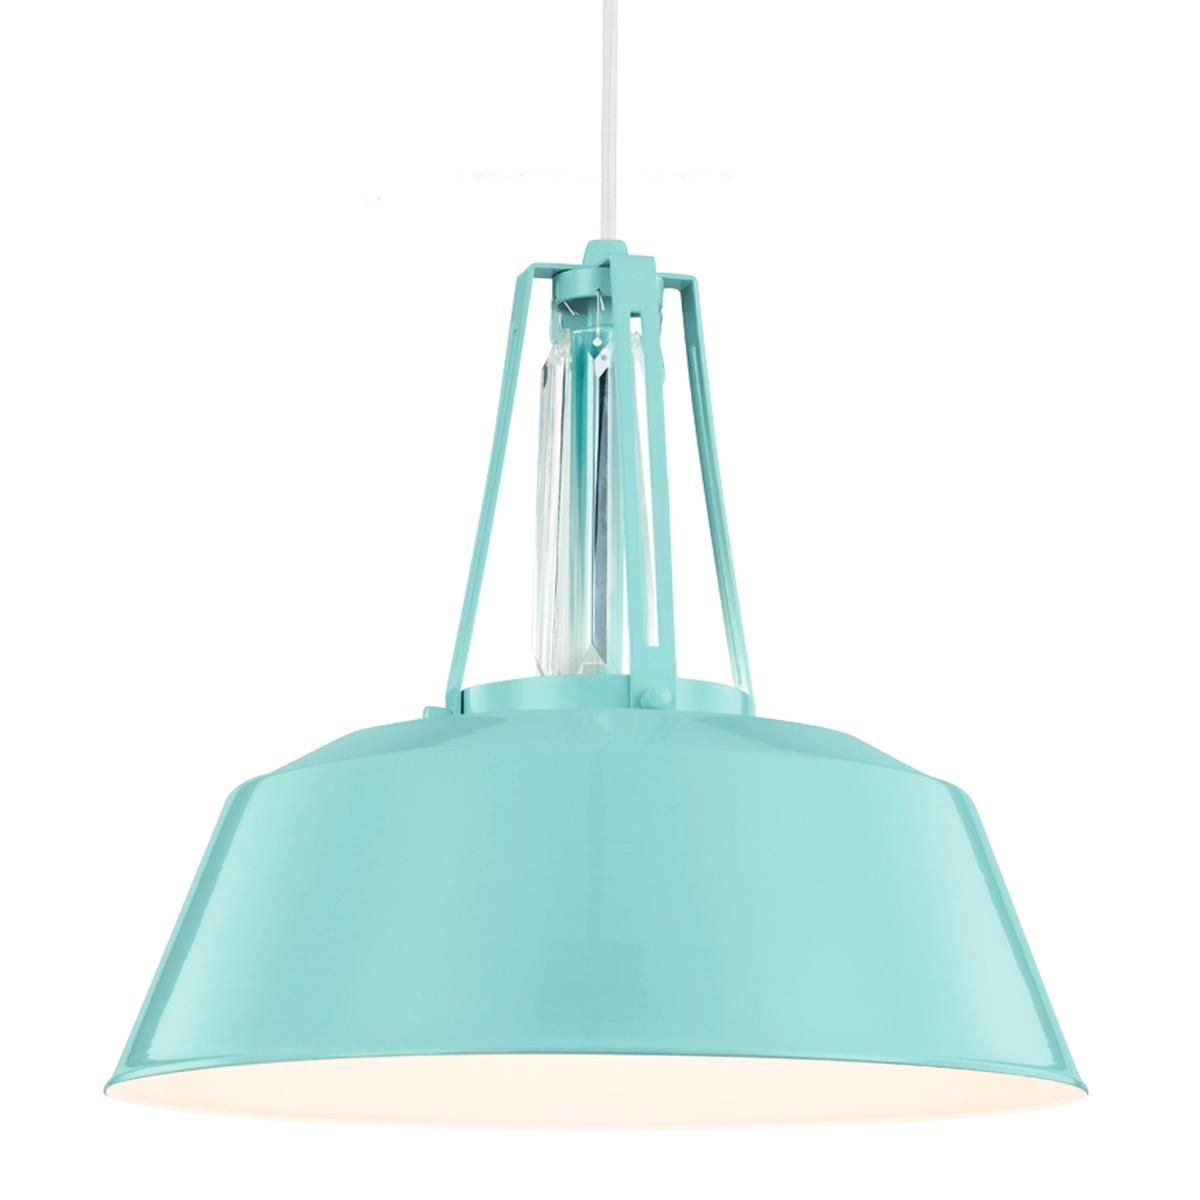 Large Soft Industrial Warehouse Pendant